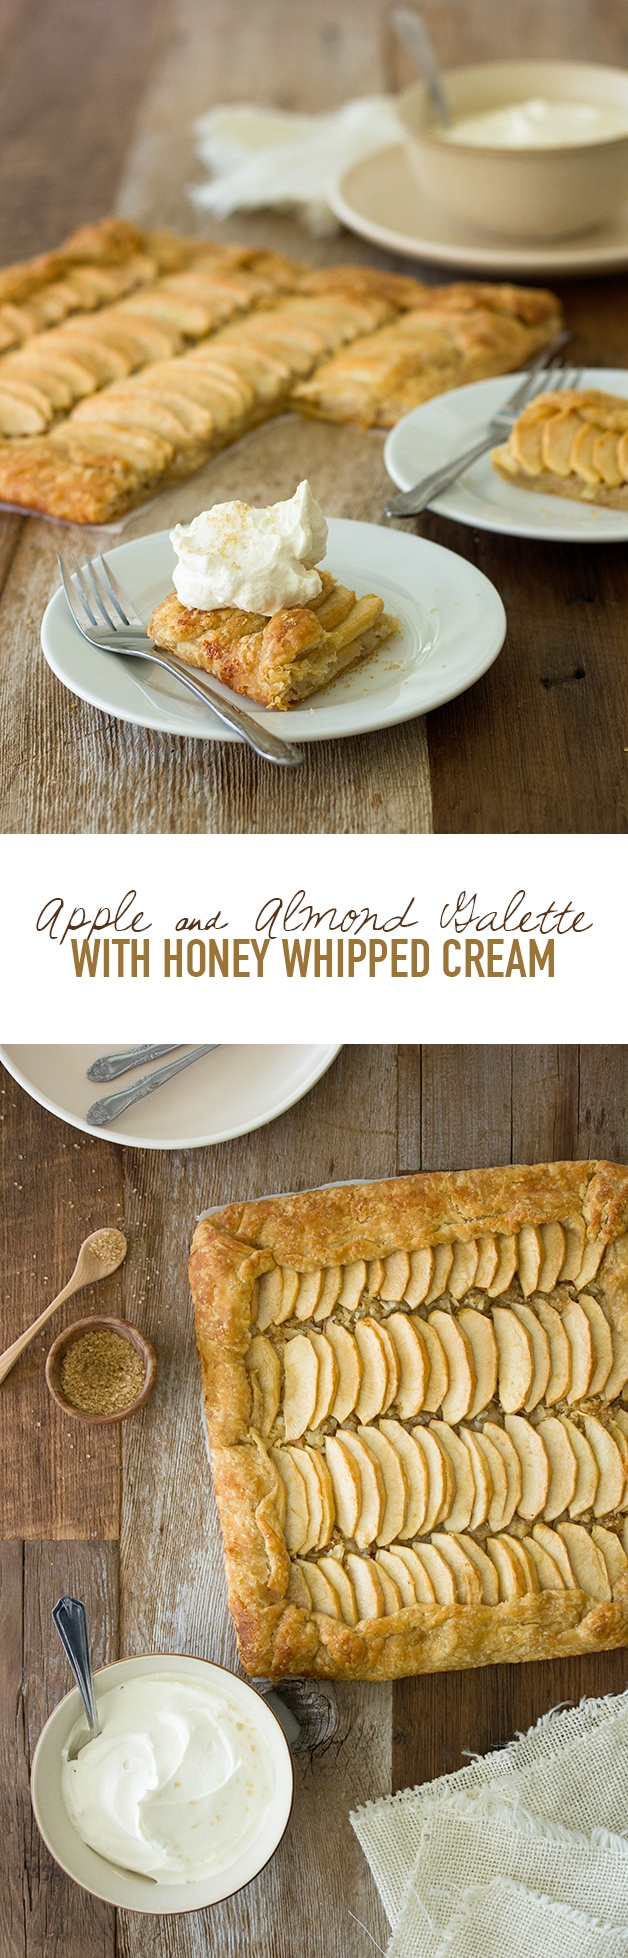 Apple and Almond Galette with Honey Whipped Cream - a light, rustic, fruity dessert.   www.brighteyedbaker.com